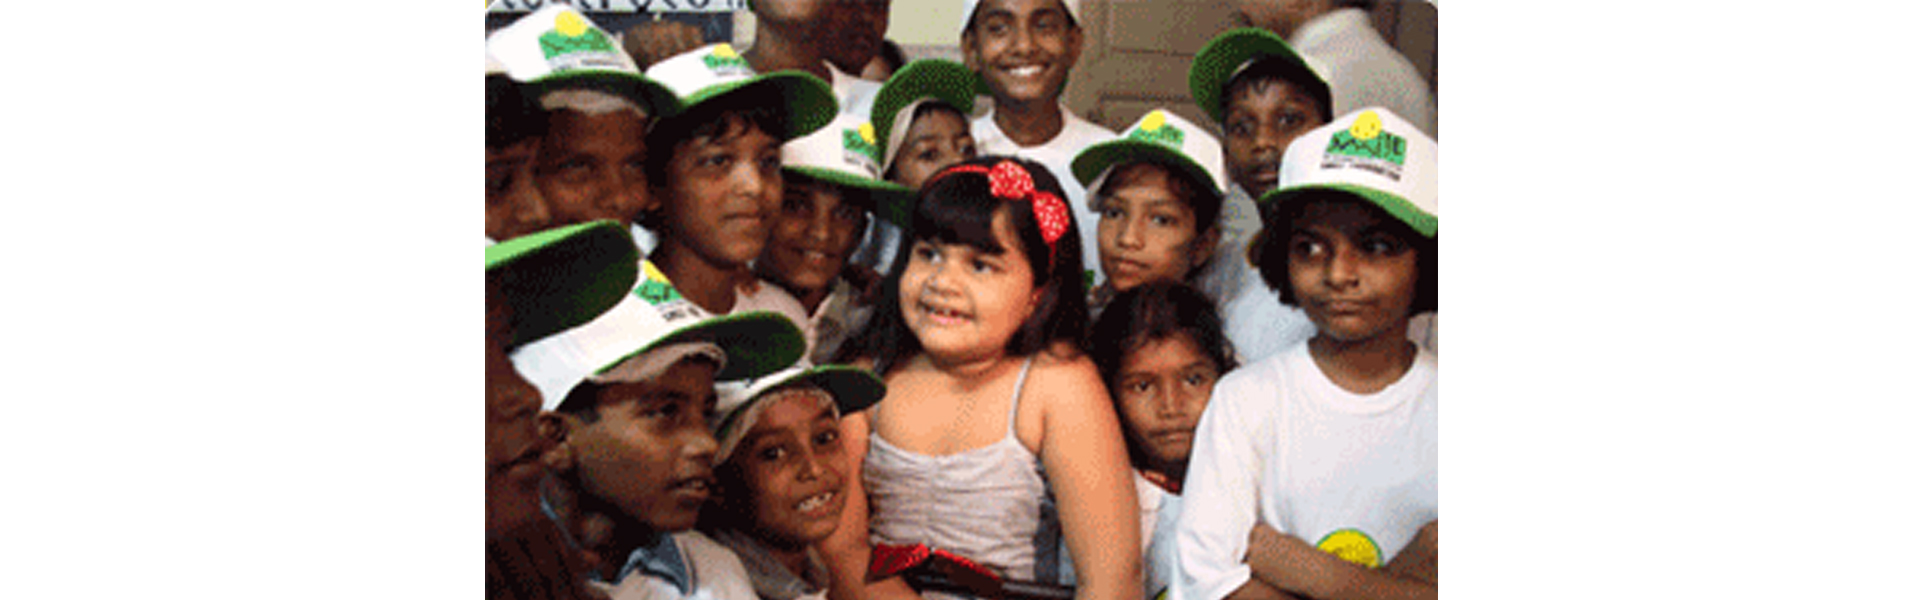 Saloni of gangu bai fame celebrates Anti Child Labour Day with Smile Foundation children